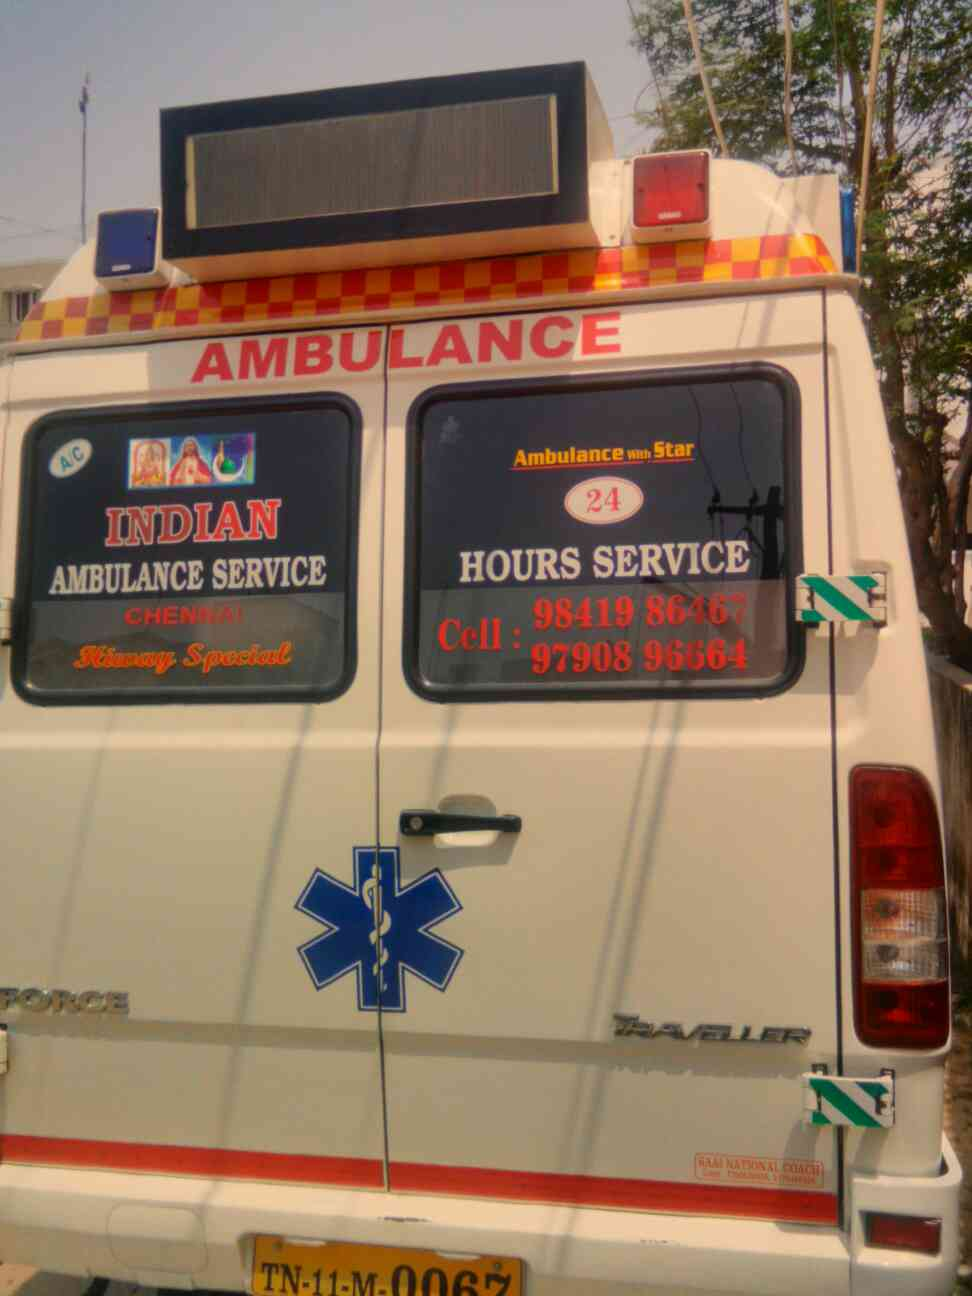 Indian ambulance service provide good 24 hours  service  & All over India